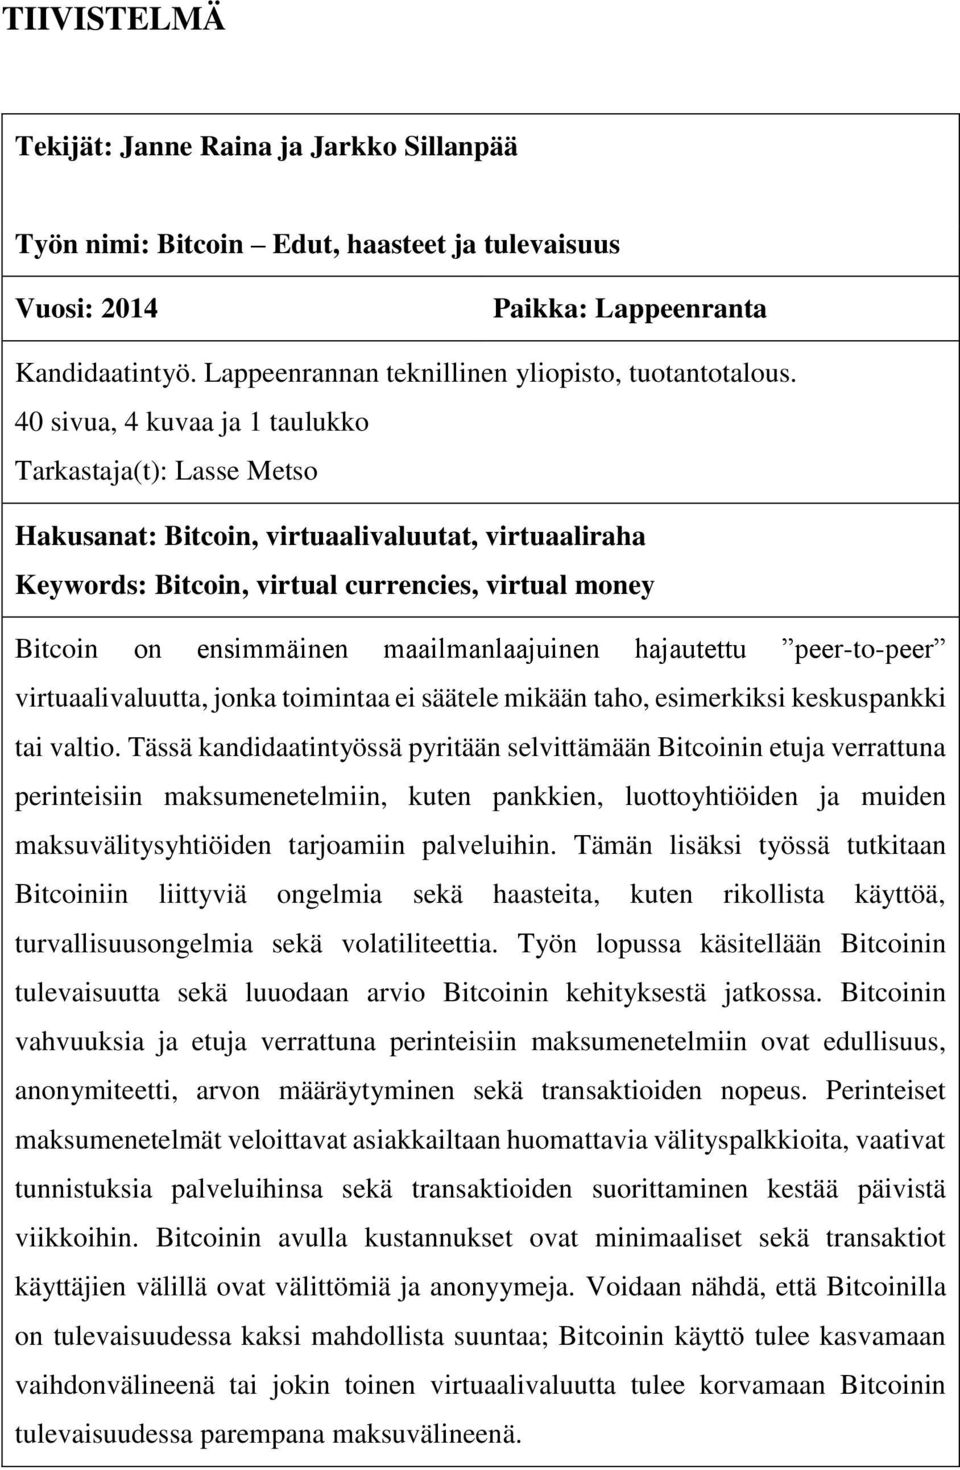 40 sivua, 4 kuvaa ja 1 taulukko Tarkastaja(t): Lasse Metso Hakusanat: Bitcoin, virtuaalivaluutat, virtuaaliraha Keywords: Bitcoin, virtual currencies, virtual money Bitcoin on ensimmäinen